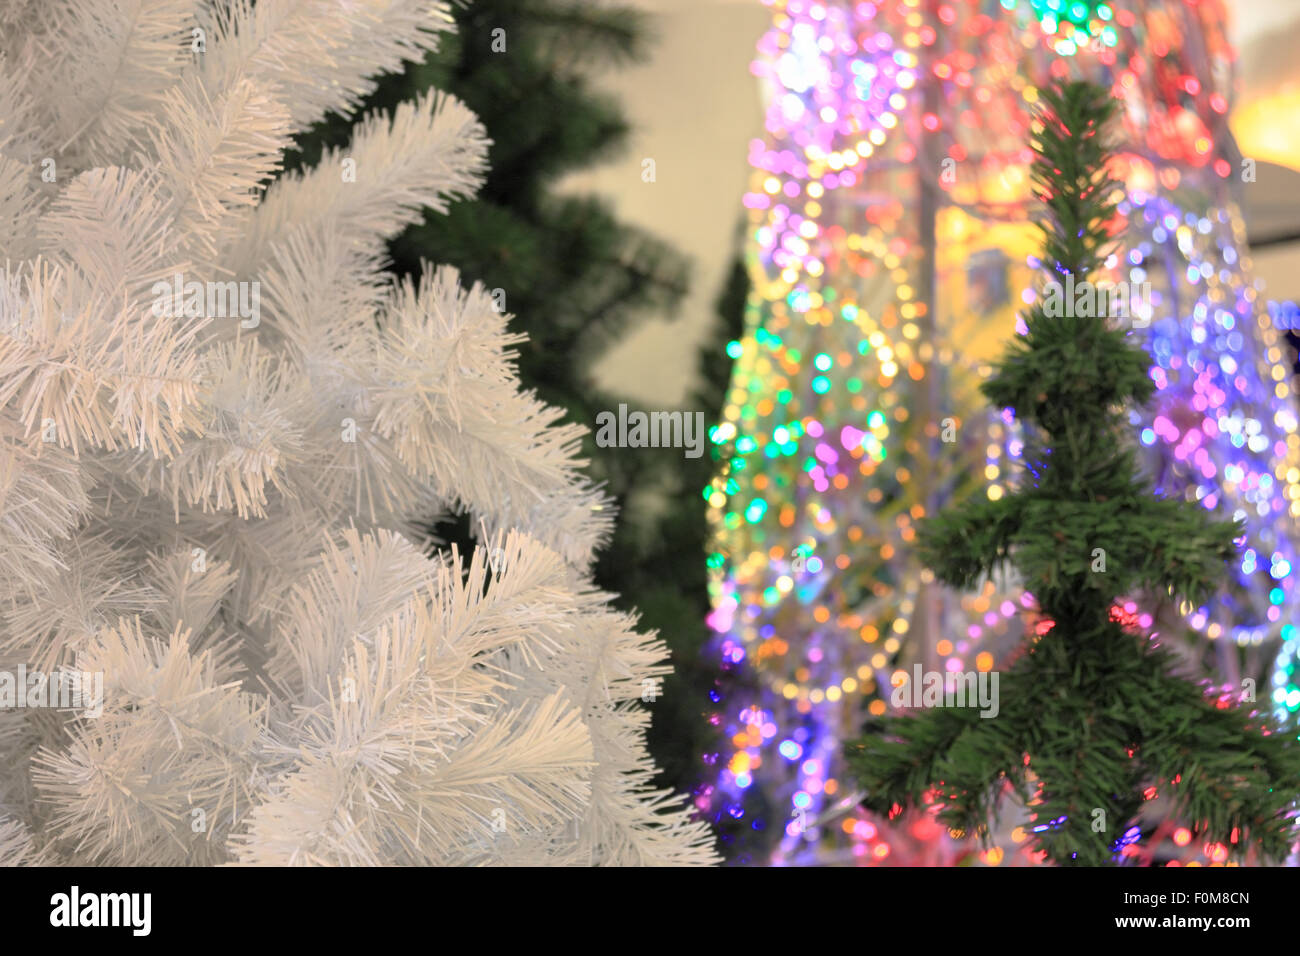 Types Of Artificial Christmas Trees.Artificial Christmas Trees Stock Photos Artificial